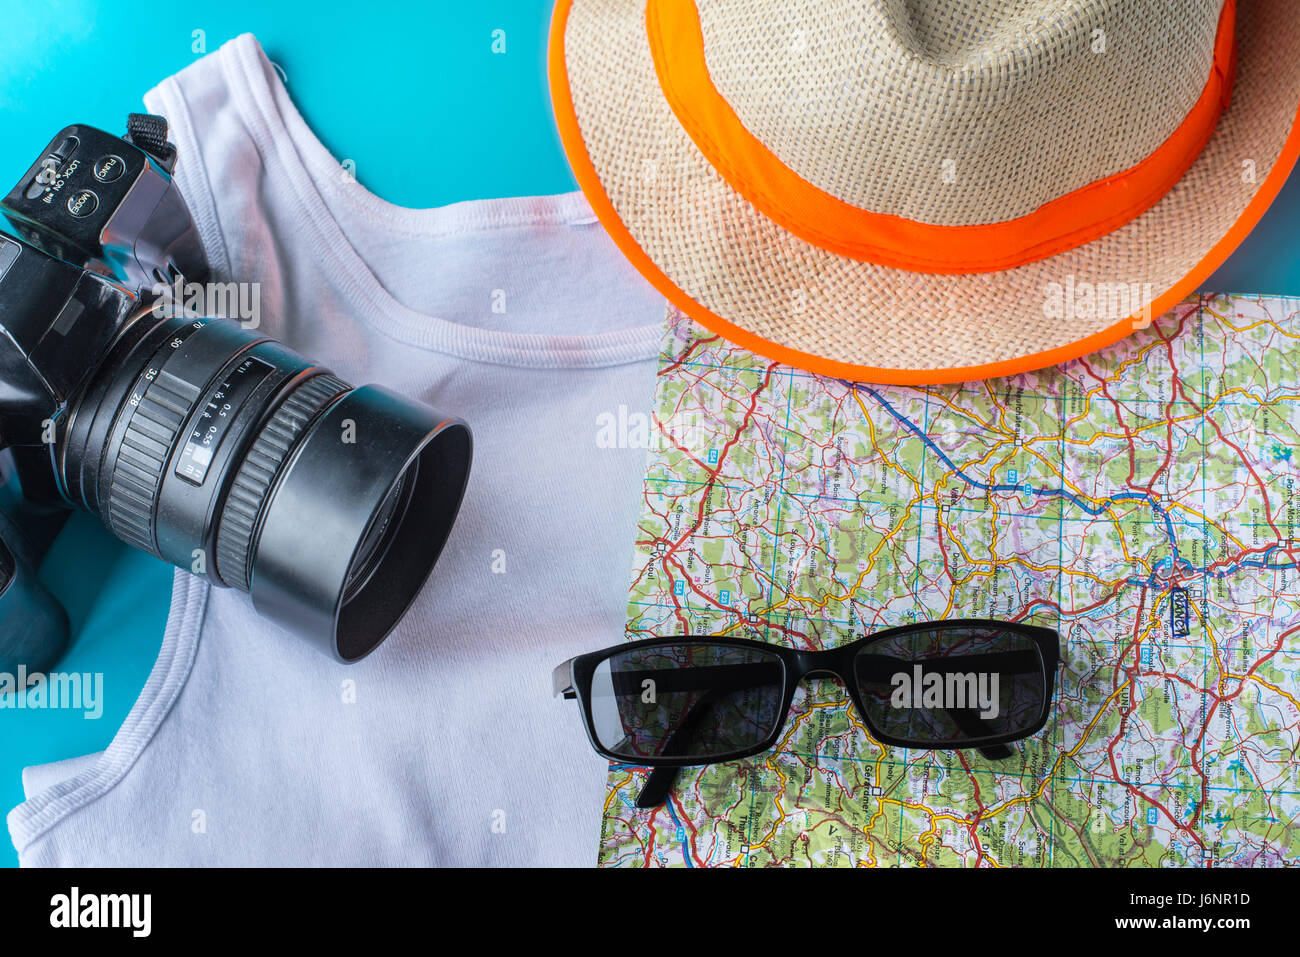 Travel kit: hat, camera, map, t-shirt and sun glasses. Flat lay composition for social media and travelers. overhead - Stock Image